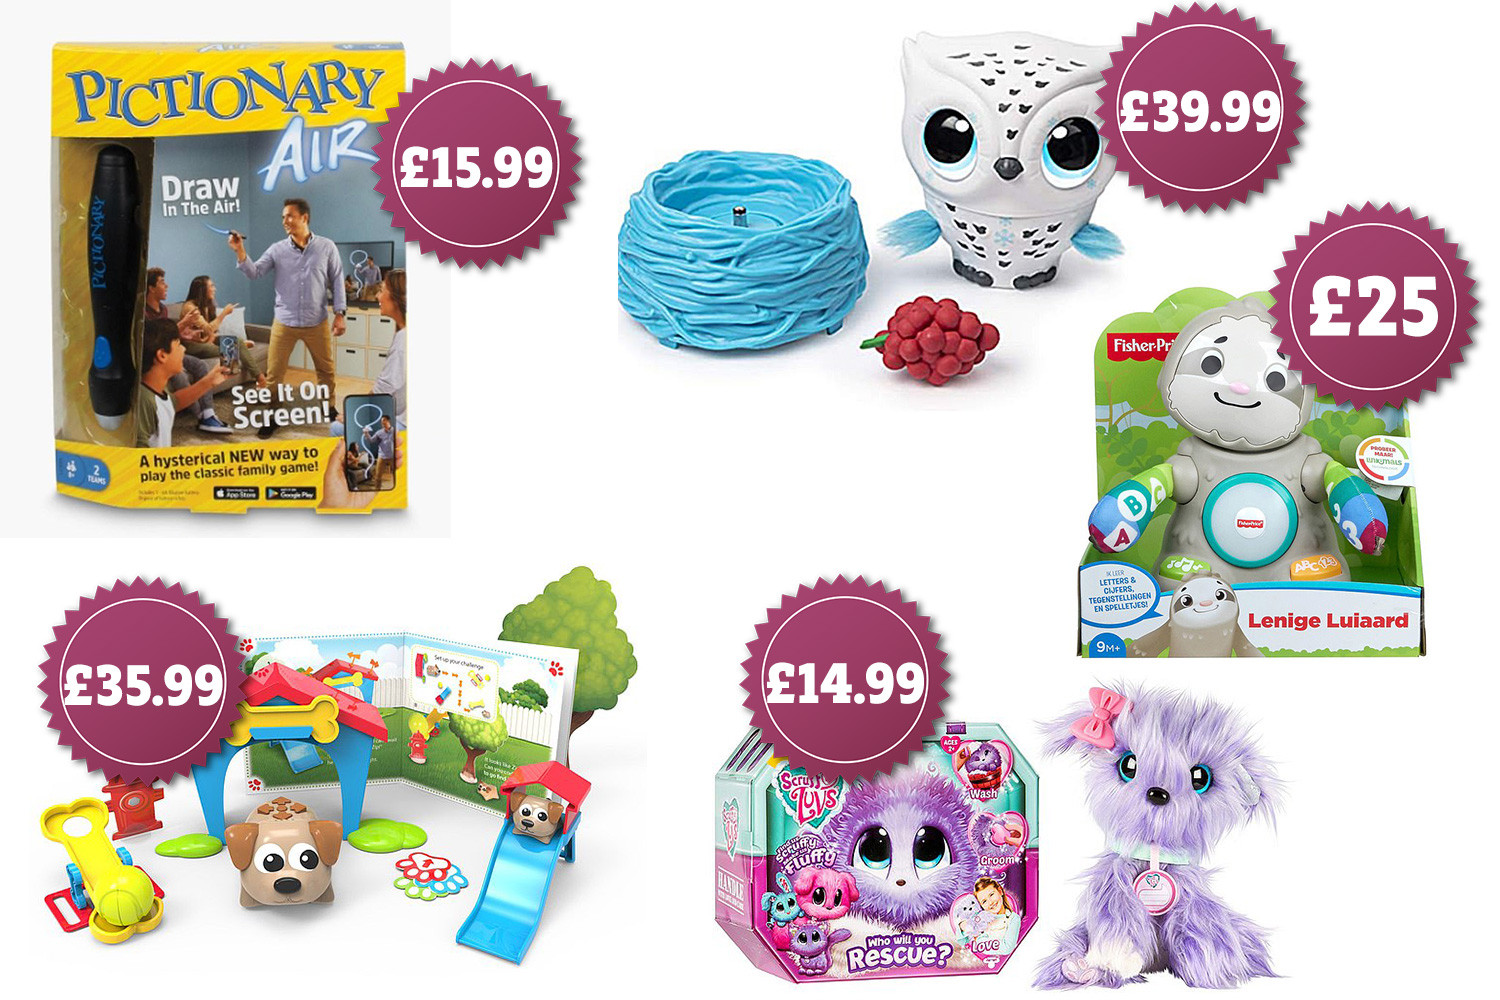 This Morning has revealed its top 12 toys for Christmas